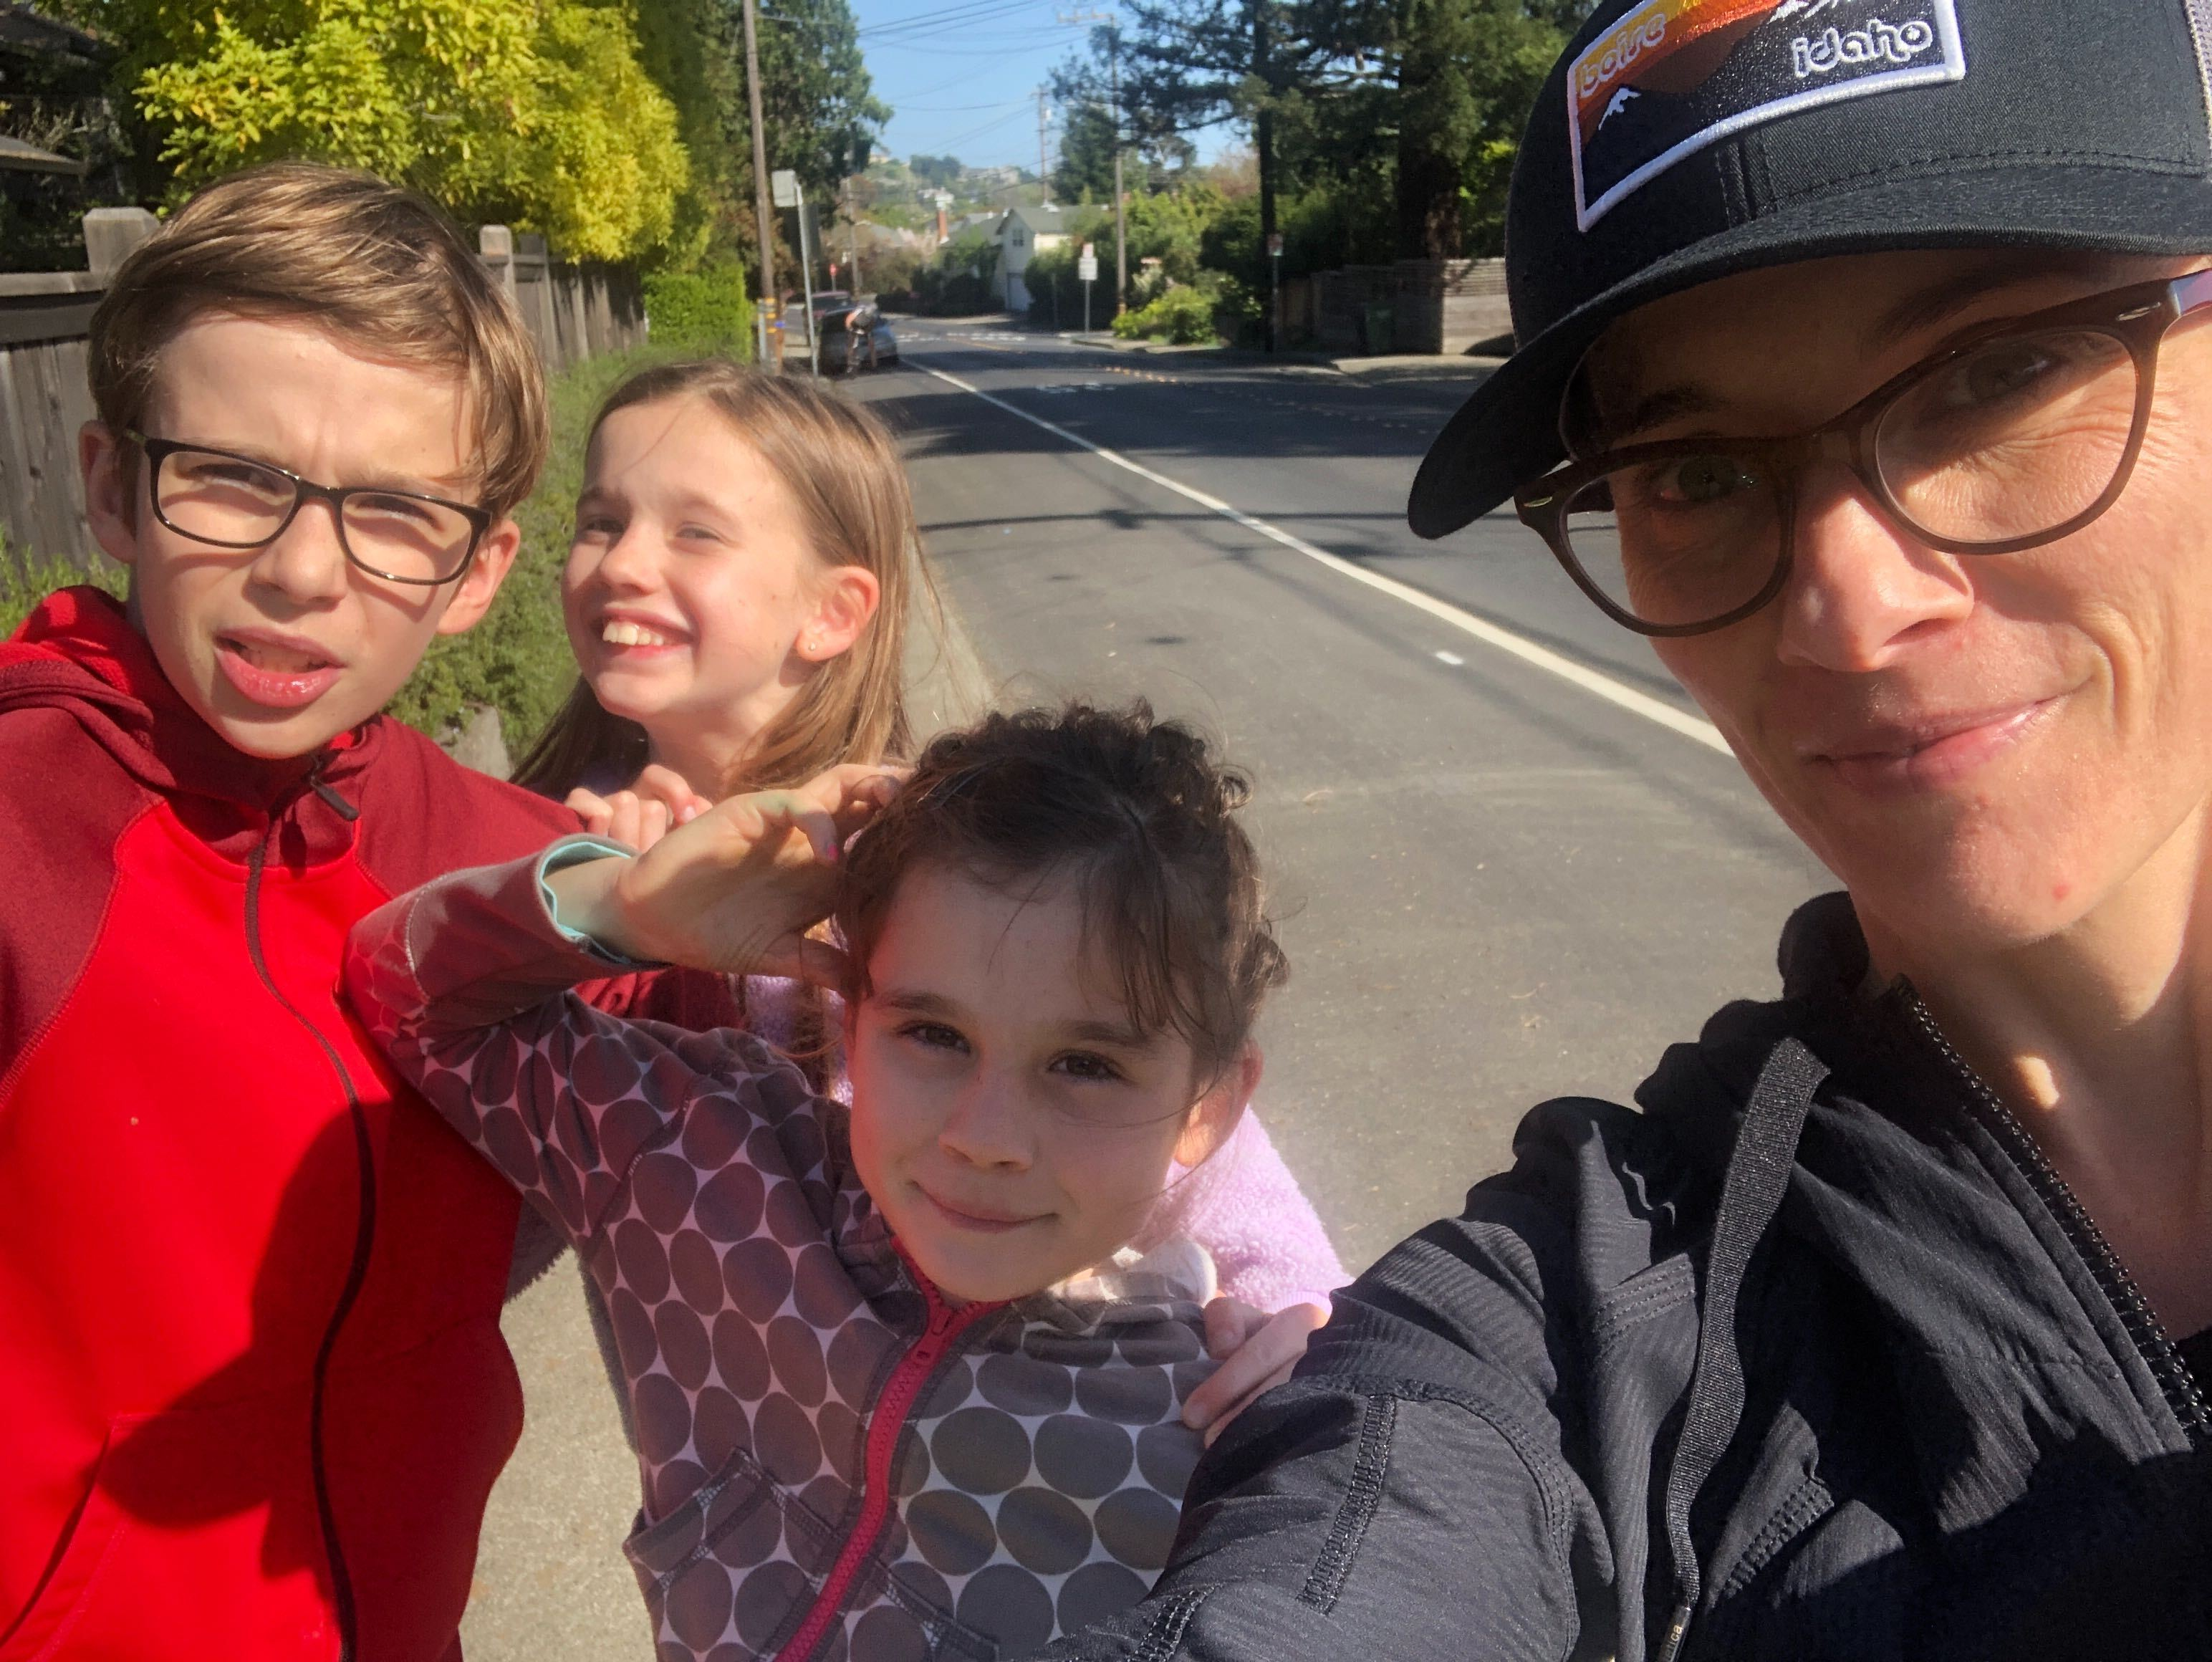 Taking a walk with the kids